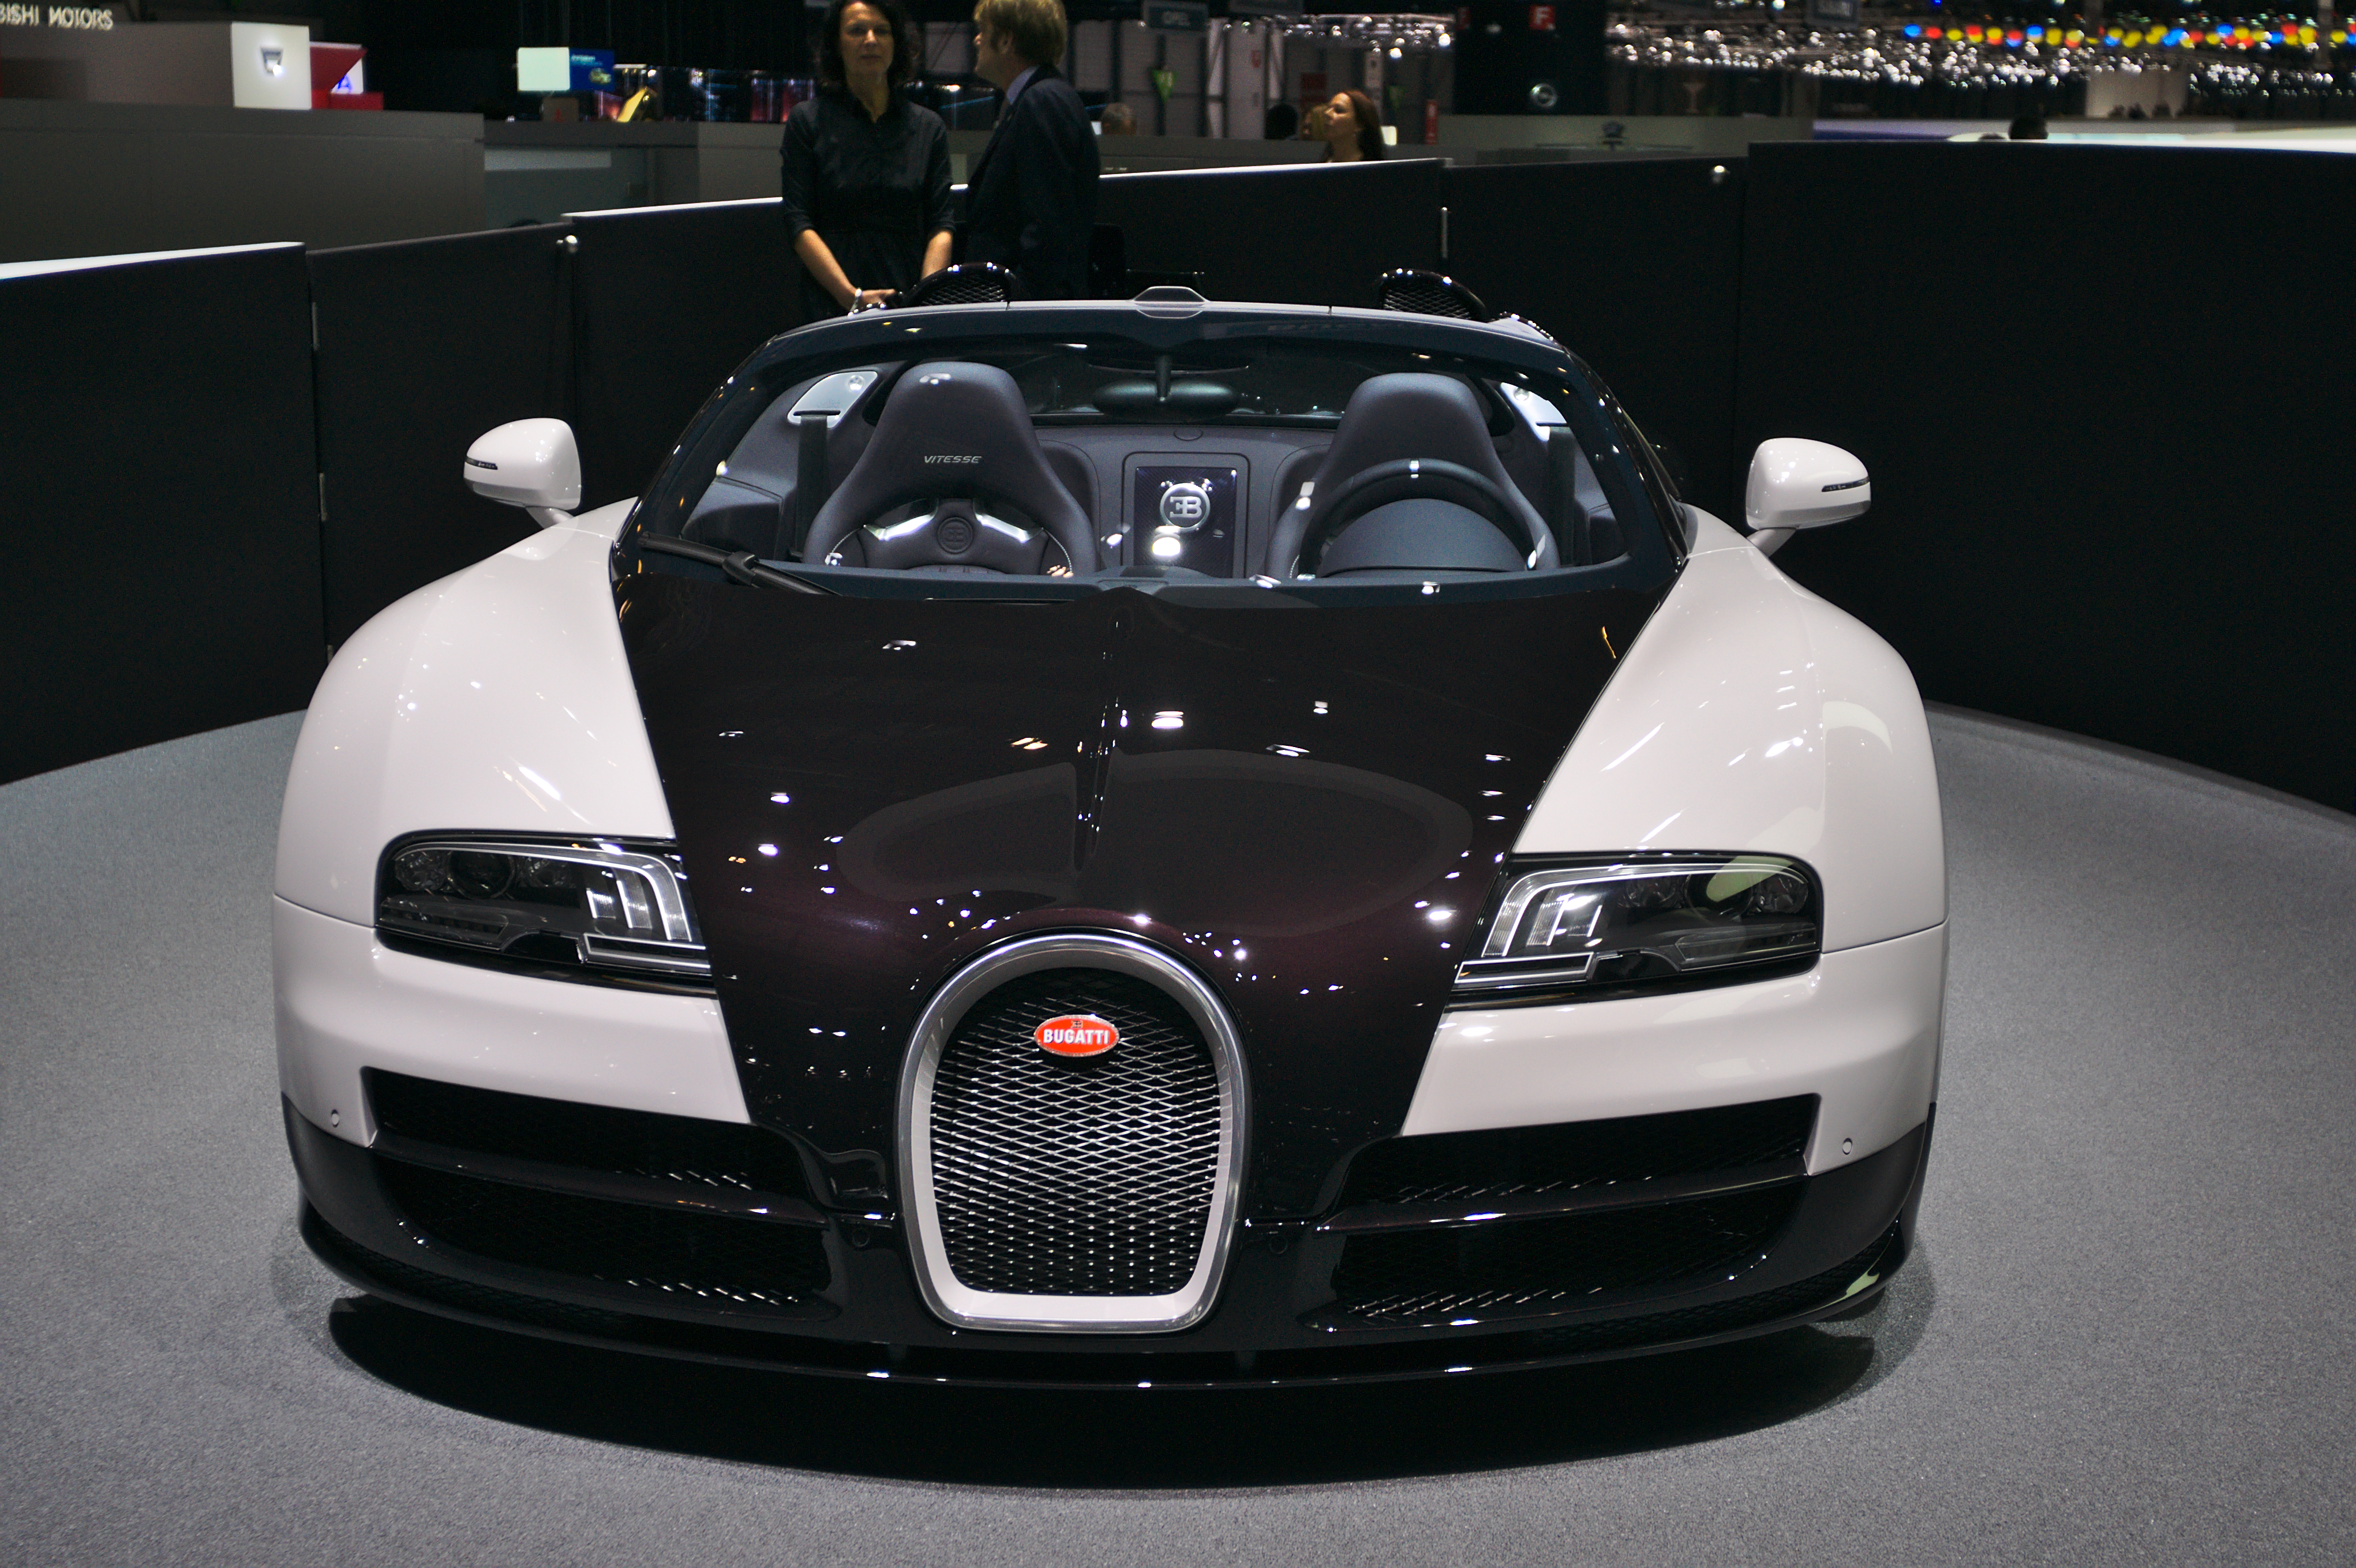 file salon de l 39 auto de gen ve 2014 20140305 bugatti veyron 16 4 grand sport. Black Bedroom Furniture Sets. Home Design Ideas